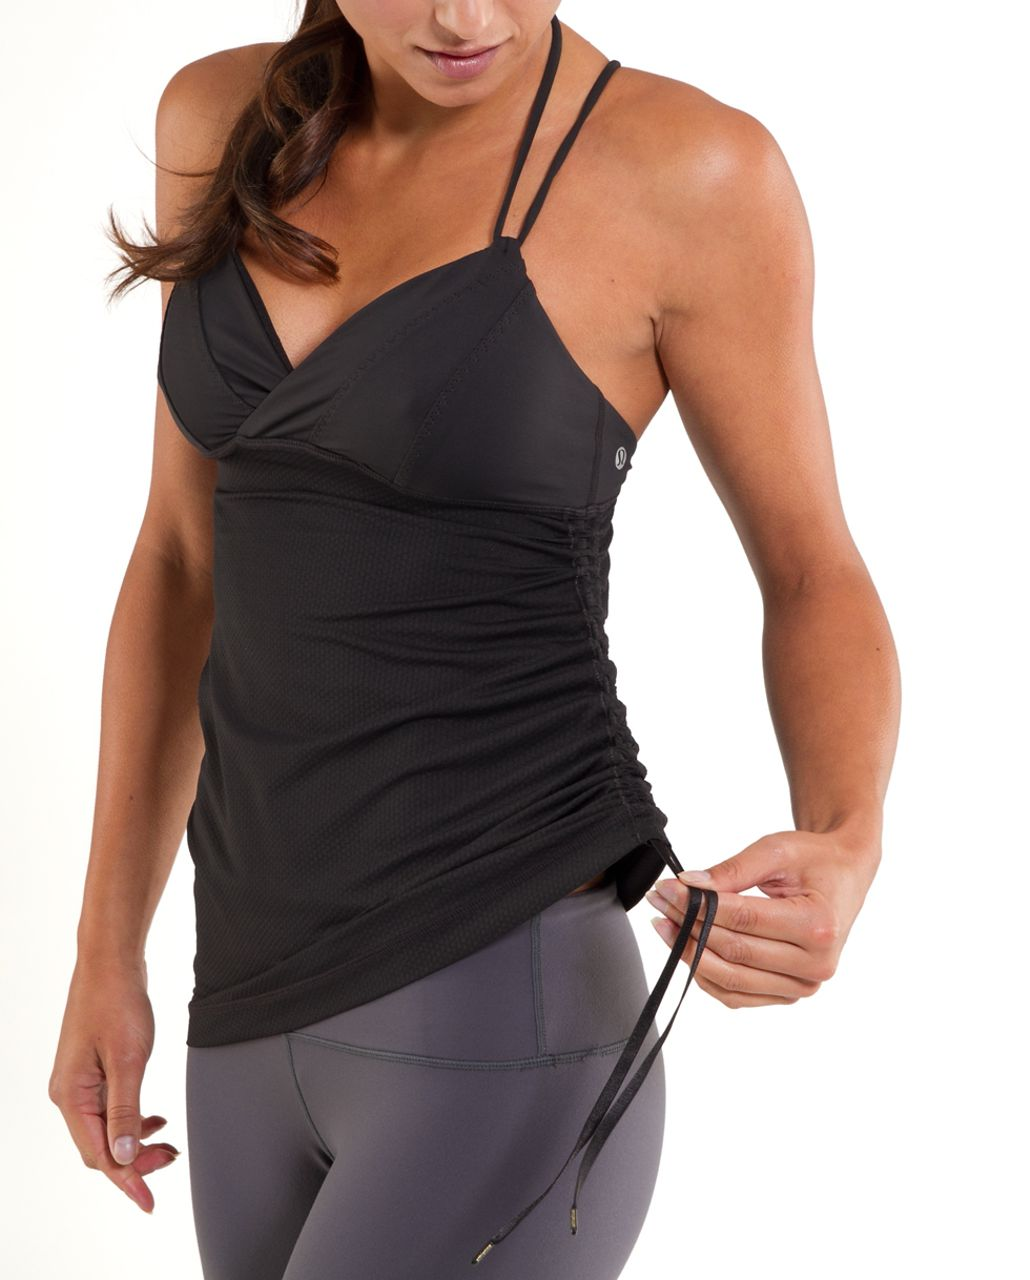 Lululemon Integrity Hot Tank - Black